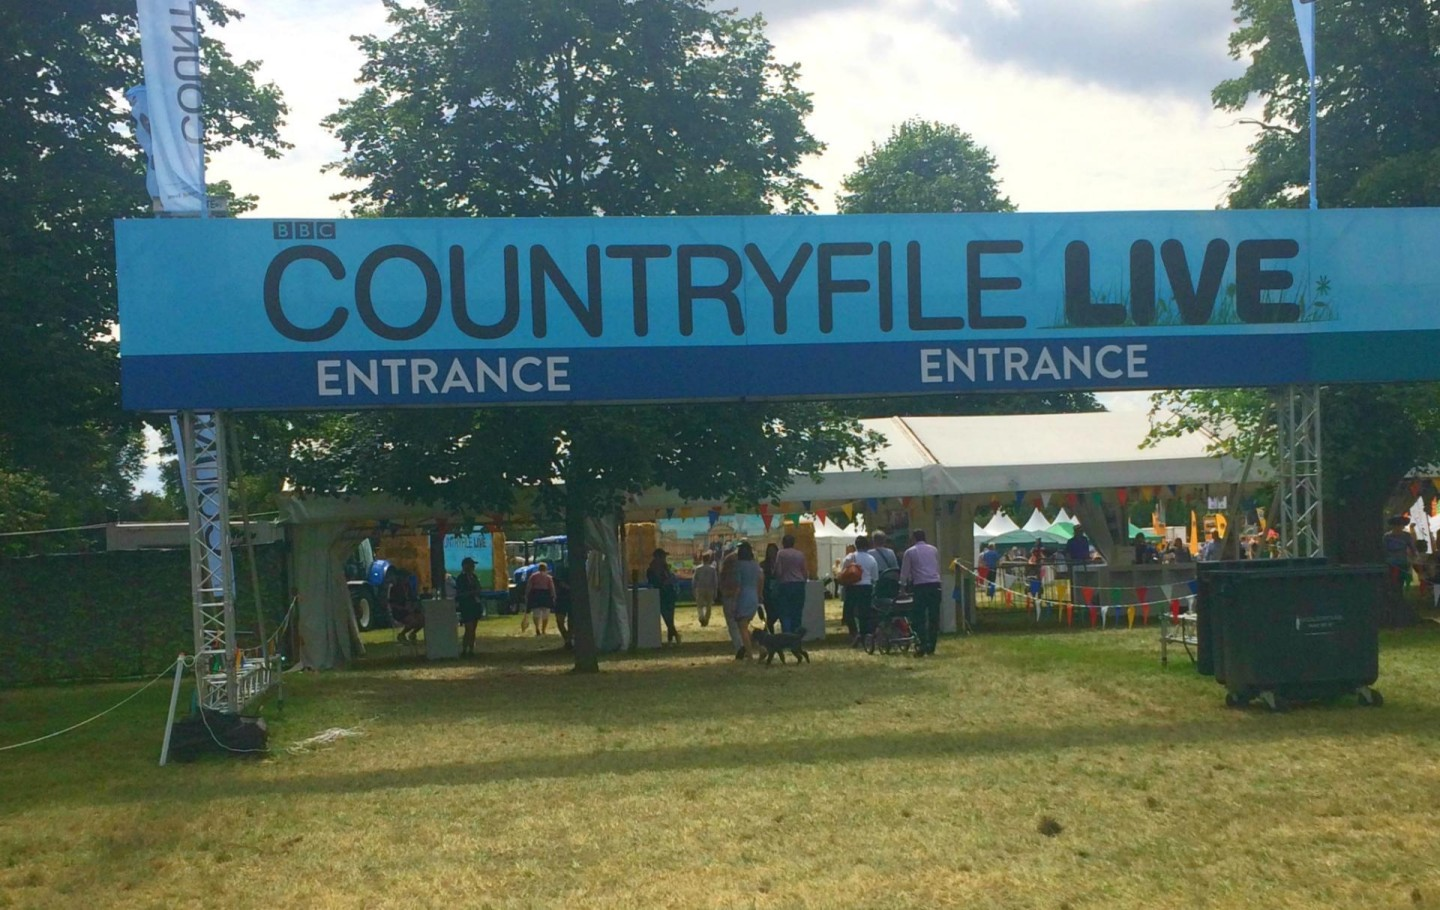 Country file Live 2016 entrance